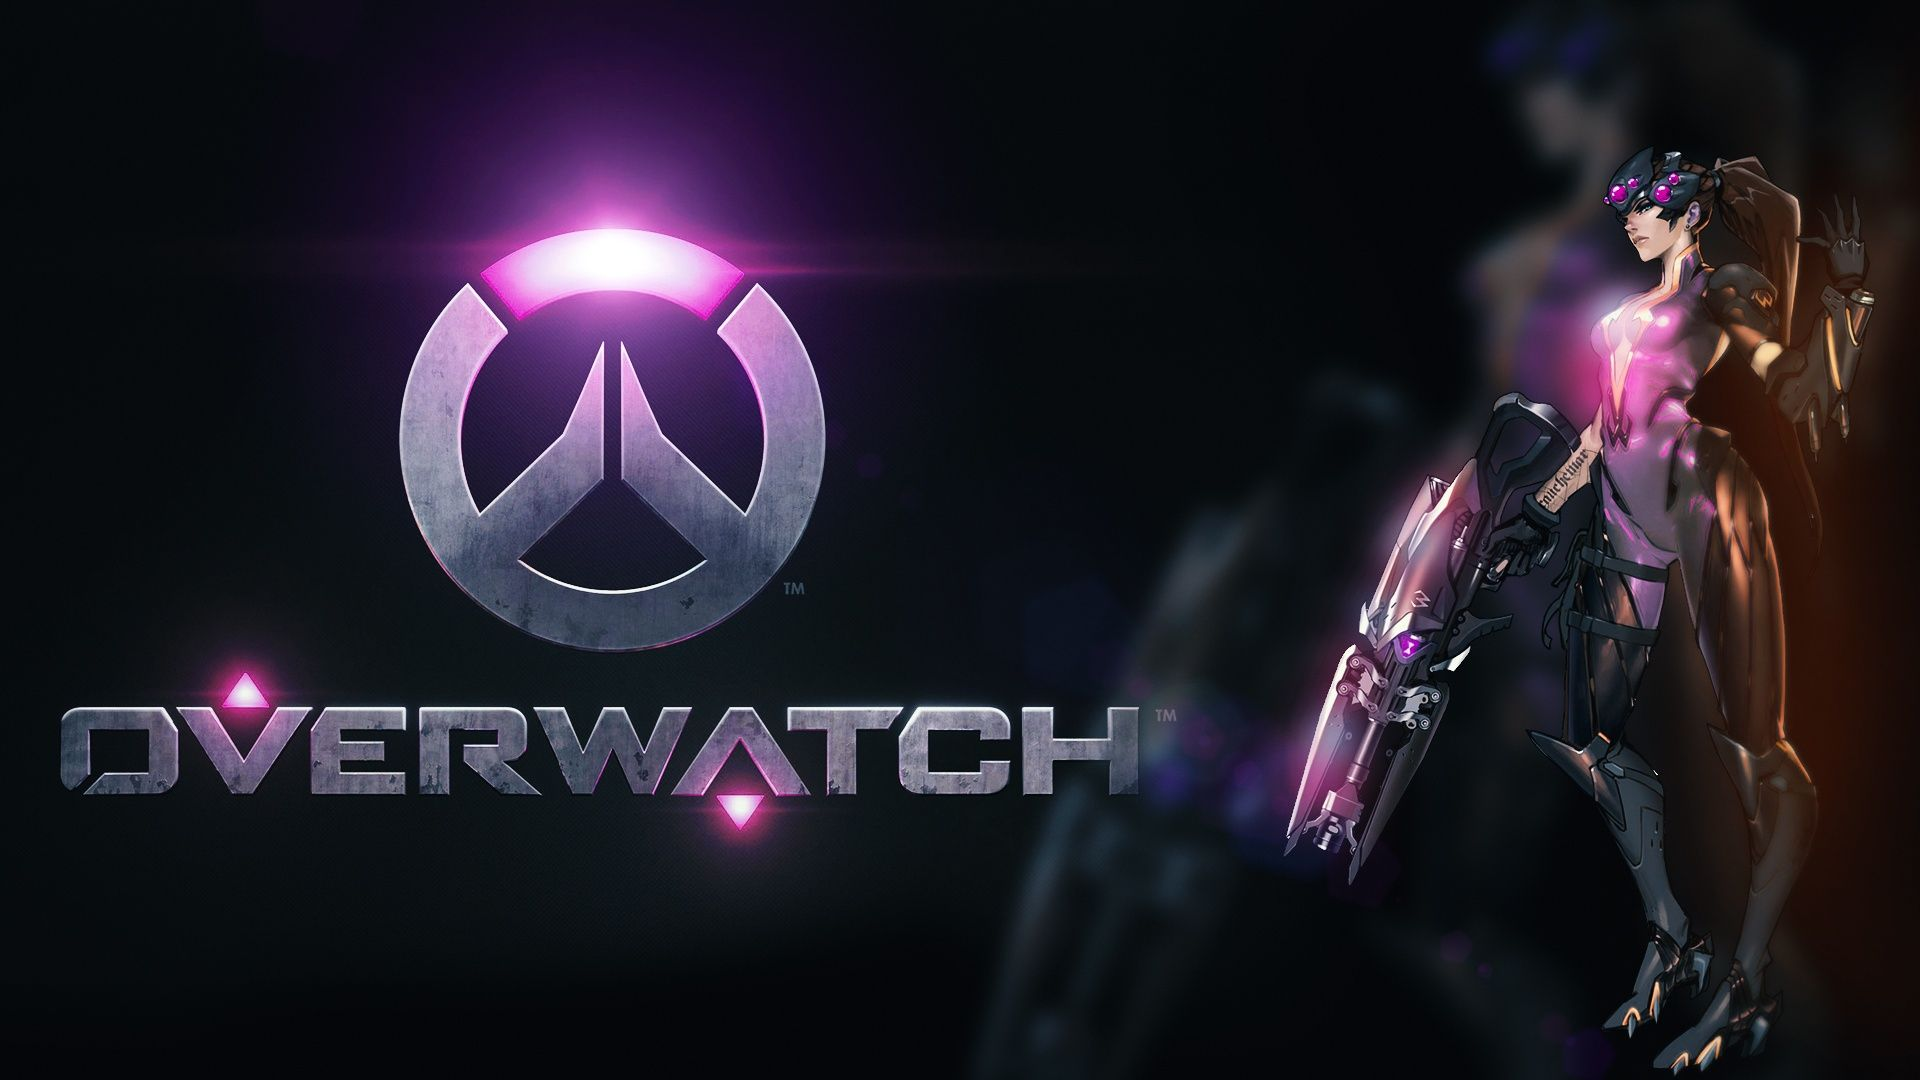 Overwatch Wallpaper Hd Overwatch Wallpapers Overwatch